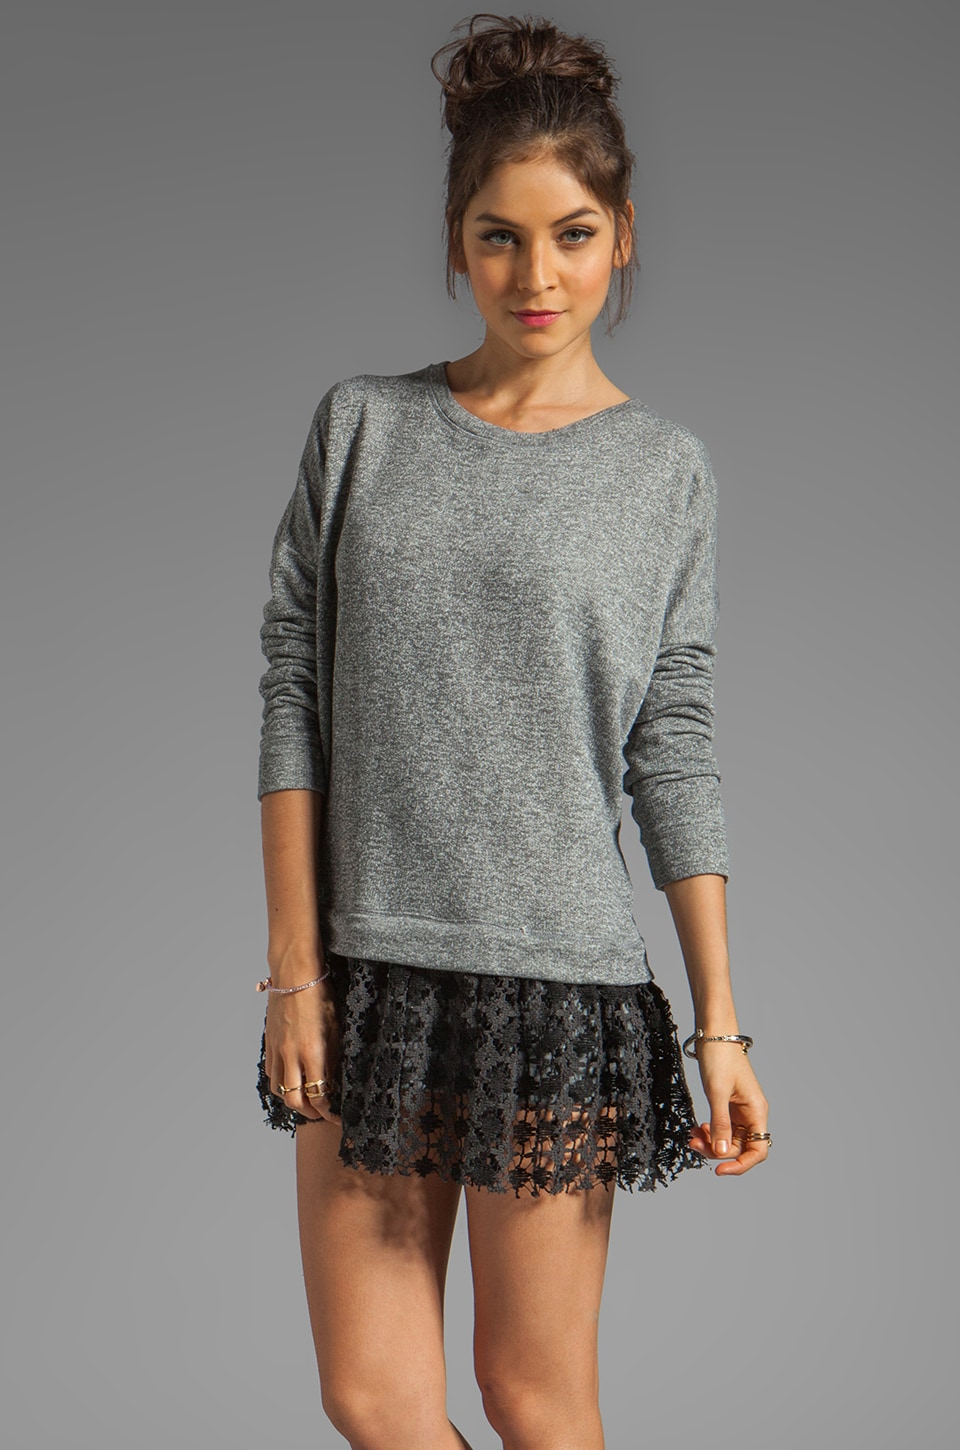 Free People Shake It Up Pullover Dress in Charcoal